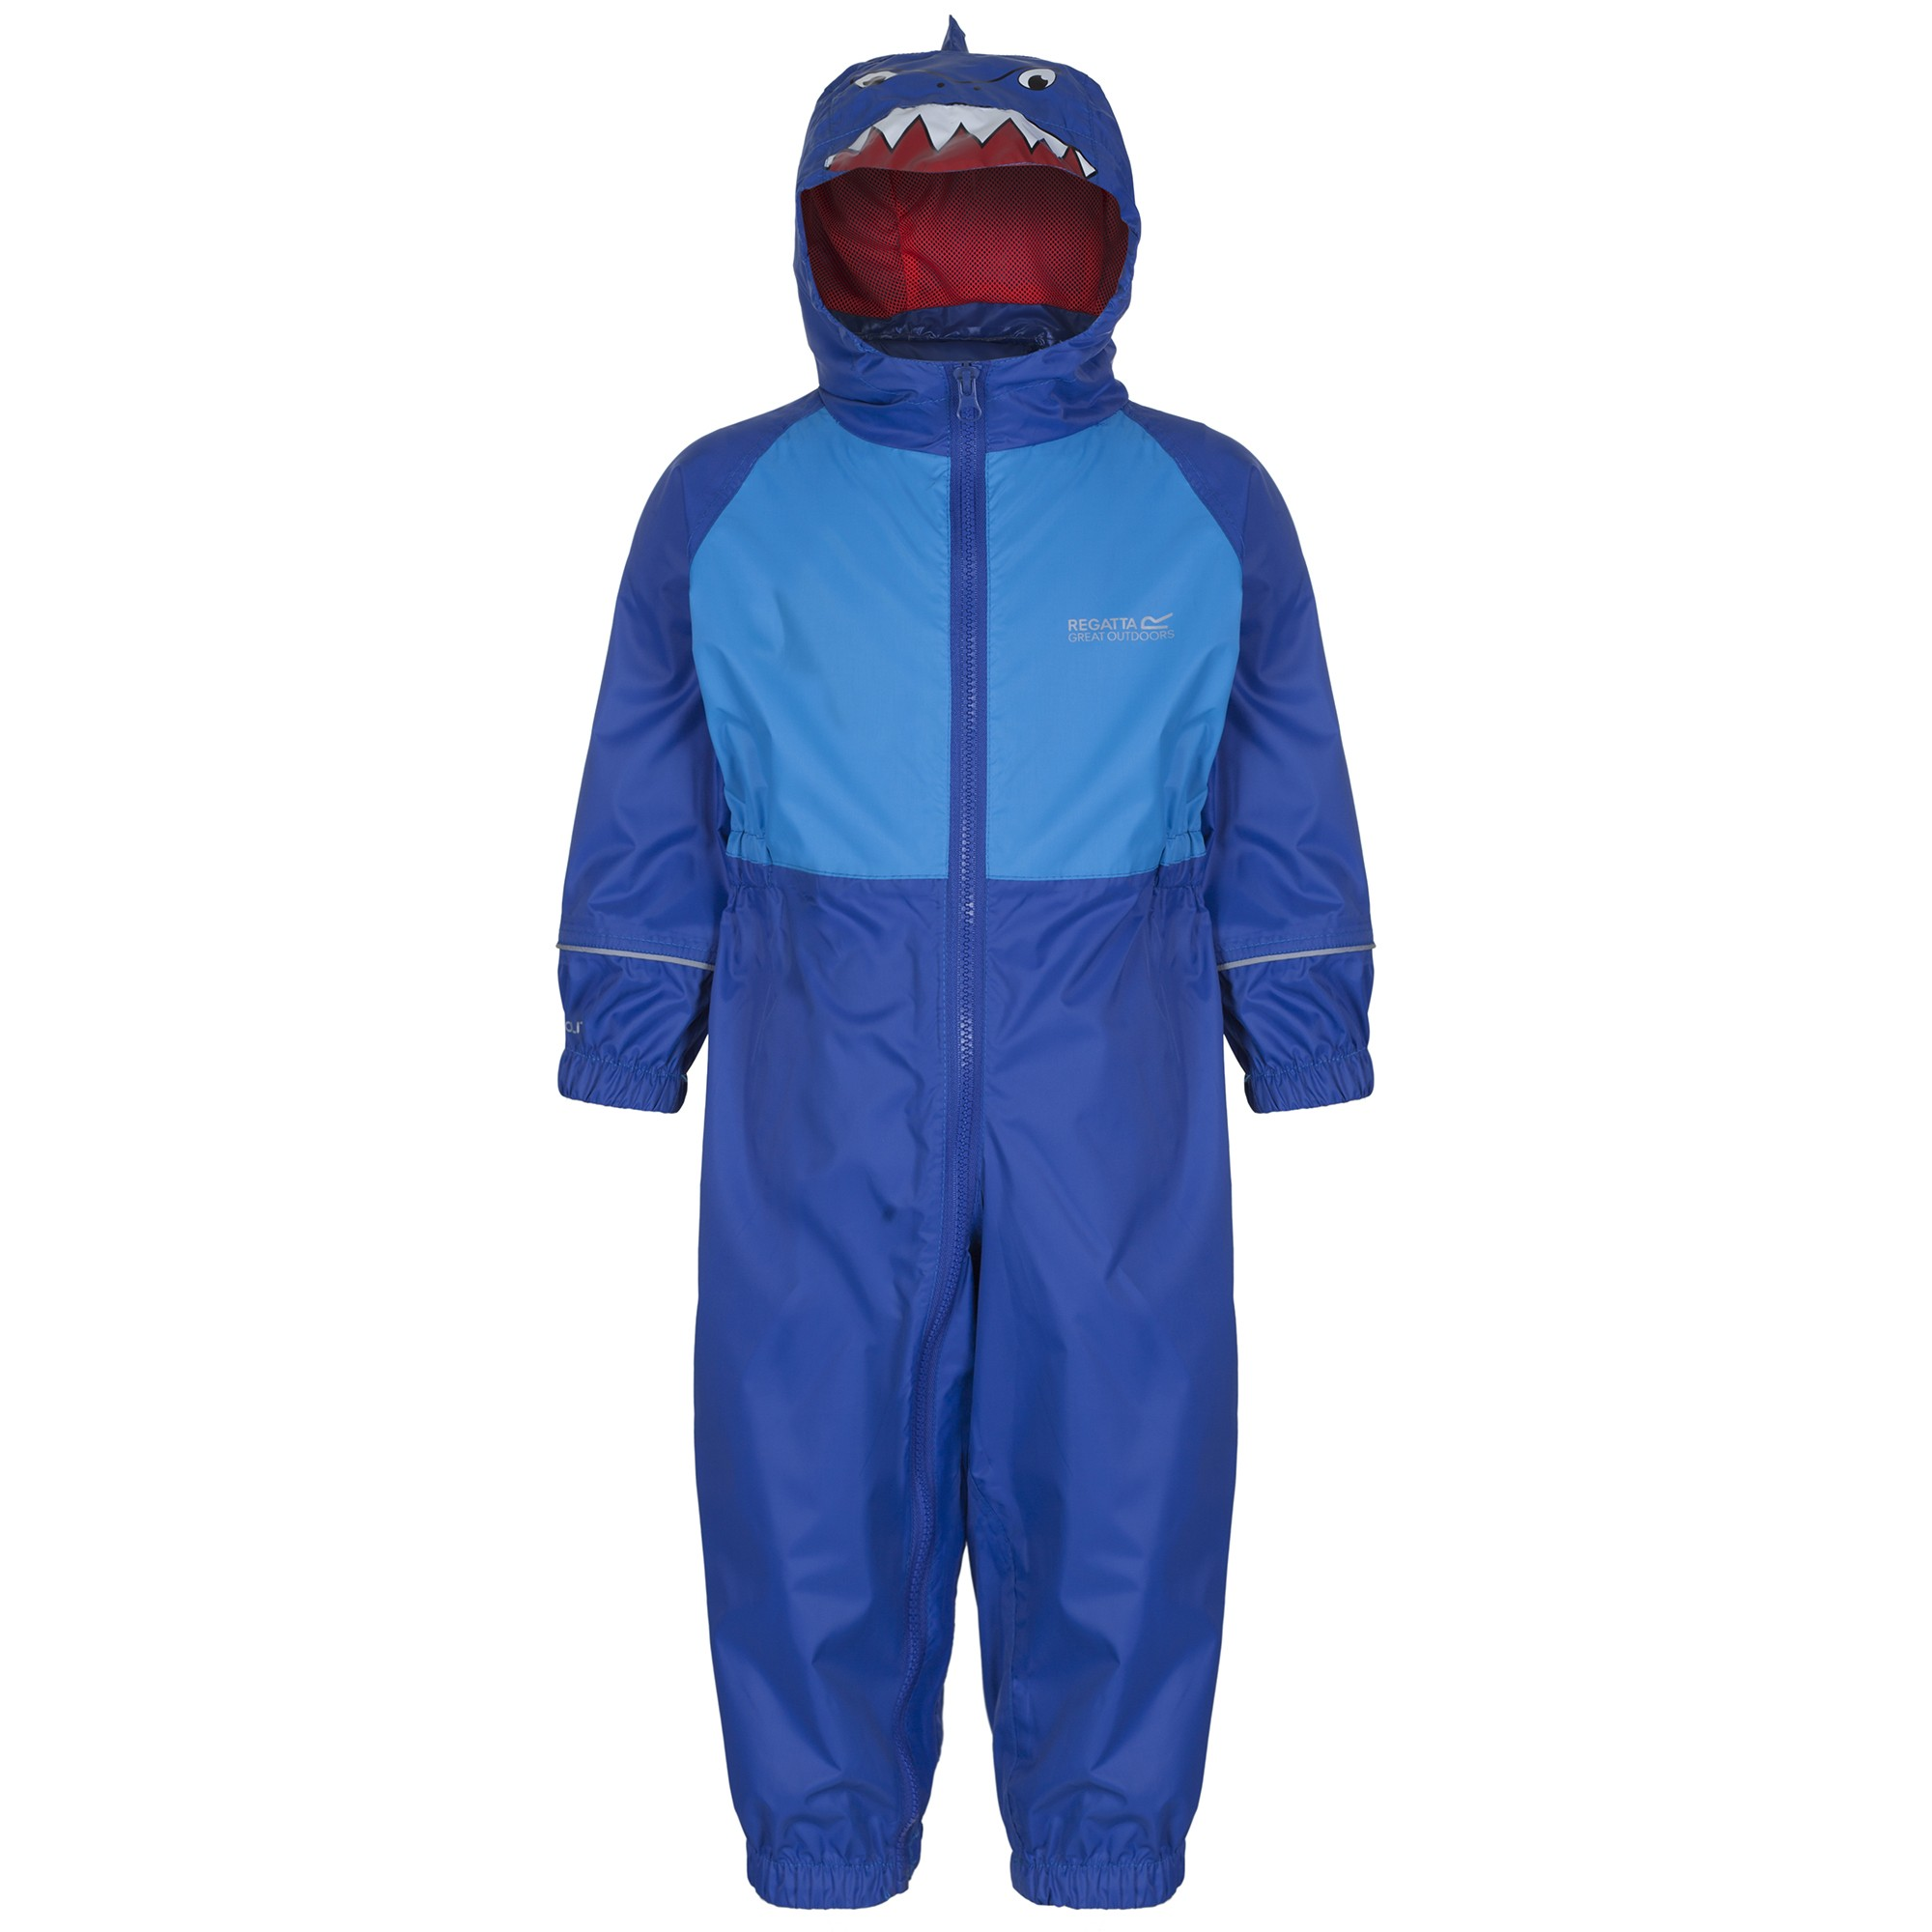 Find great deals on eBay for kids childs waterproof suits. Shop with confidence.